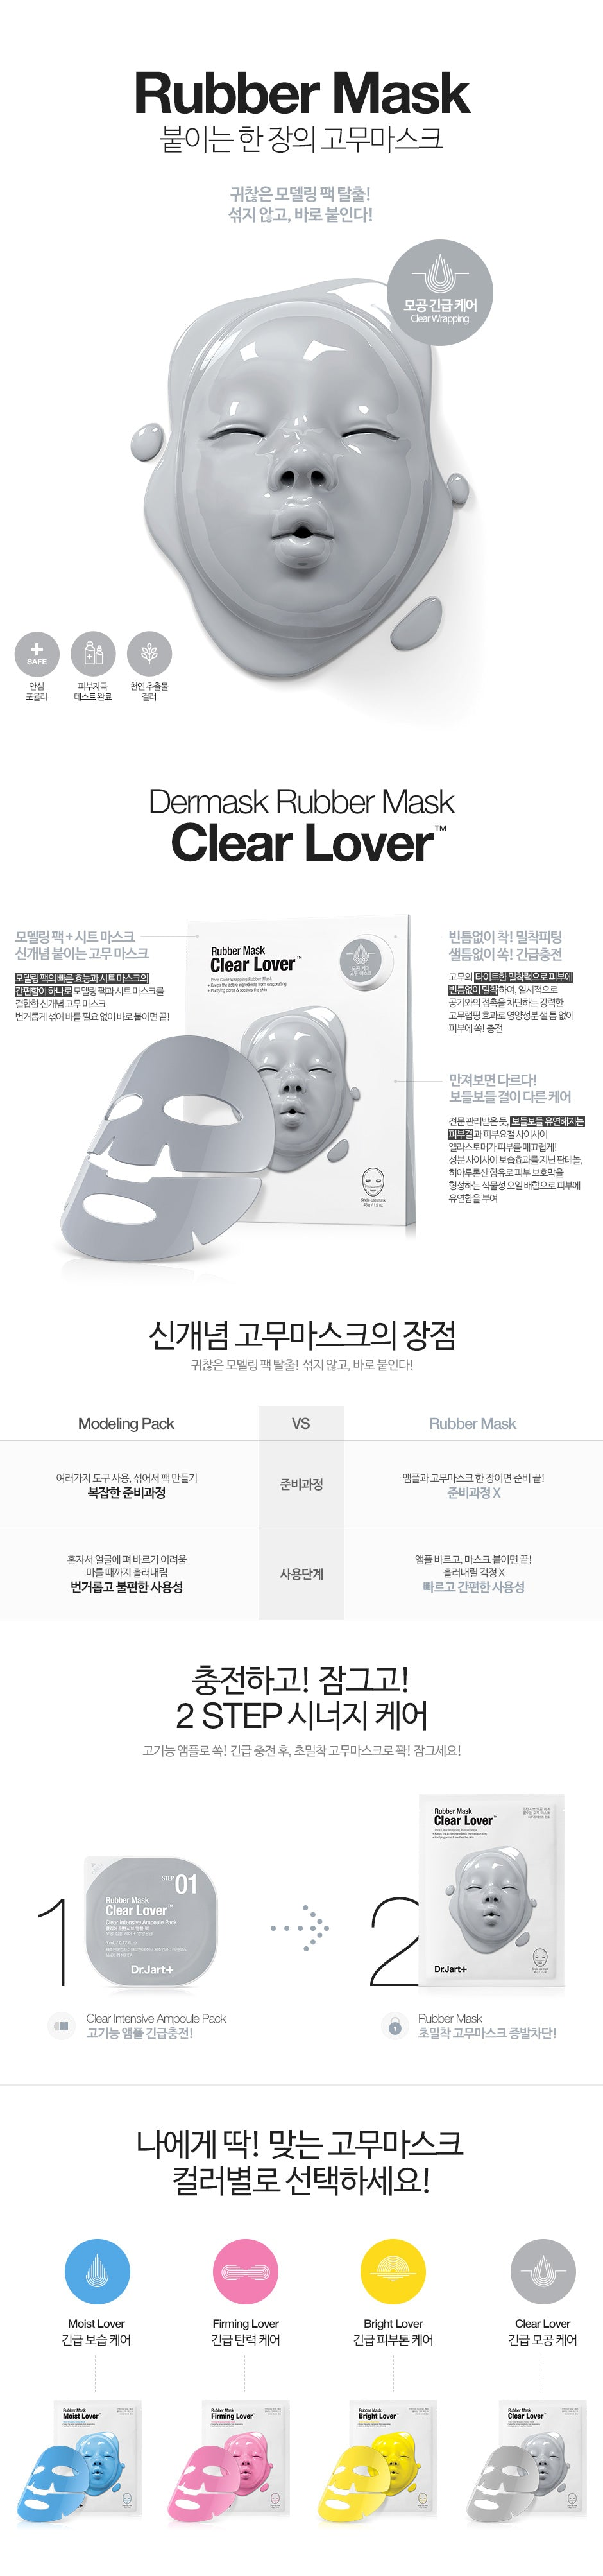 Dr Jart Rubber Mask Clear Lover Korean Brand Sheet Mask Gel Mask UK 韩国面膜英国现货净肤